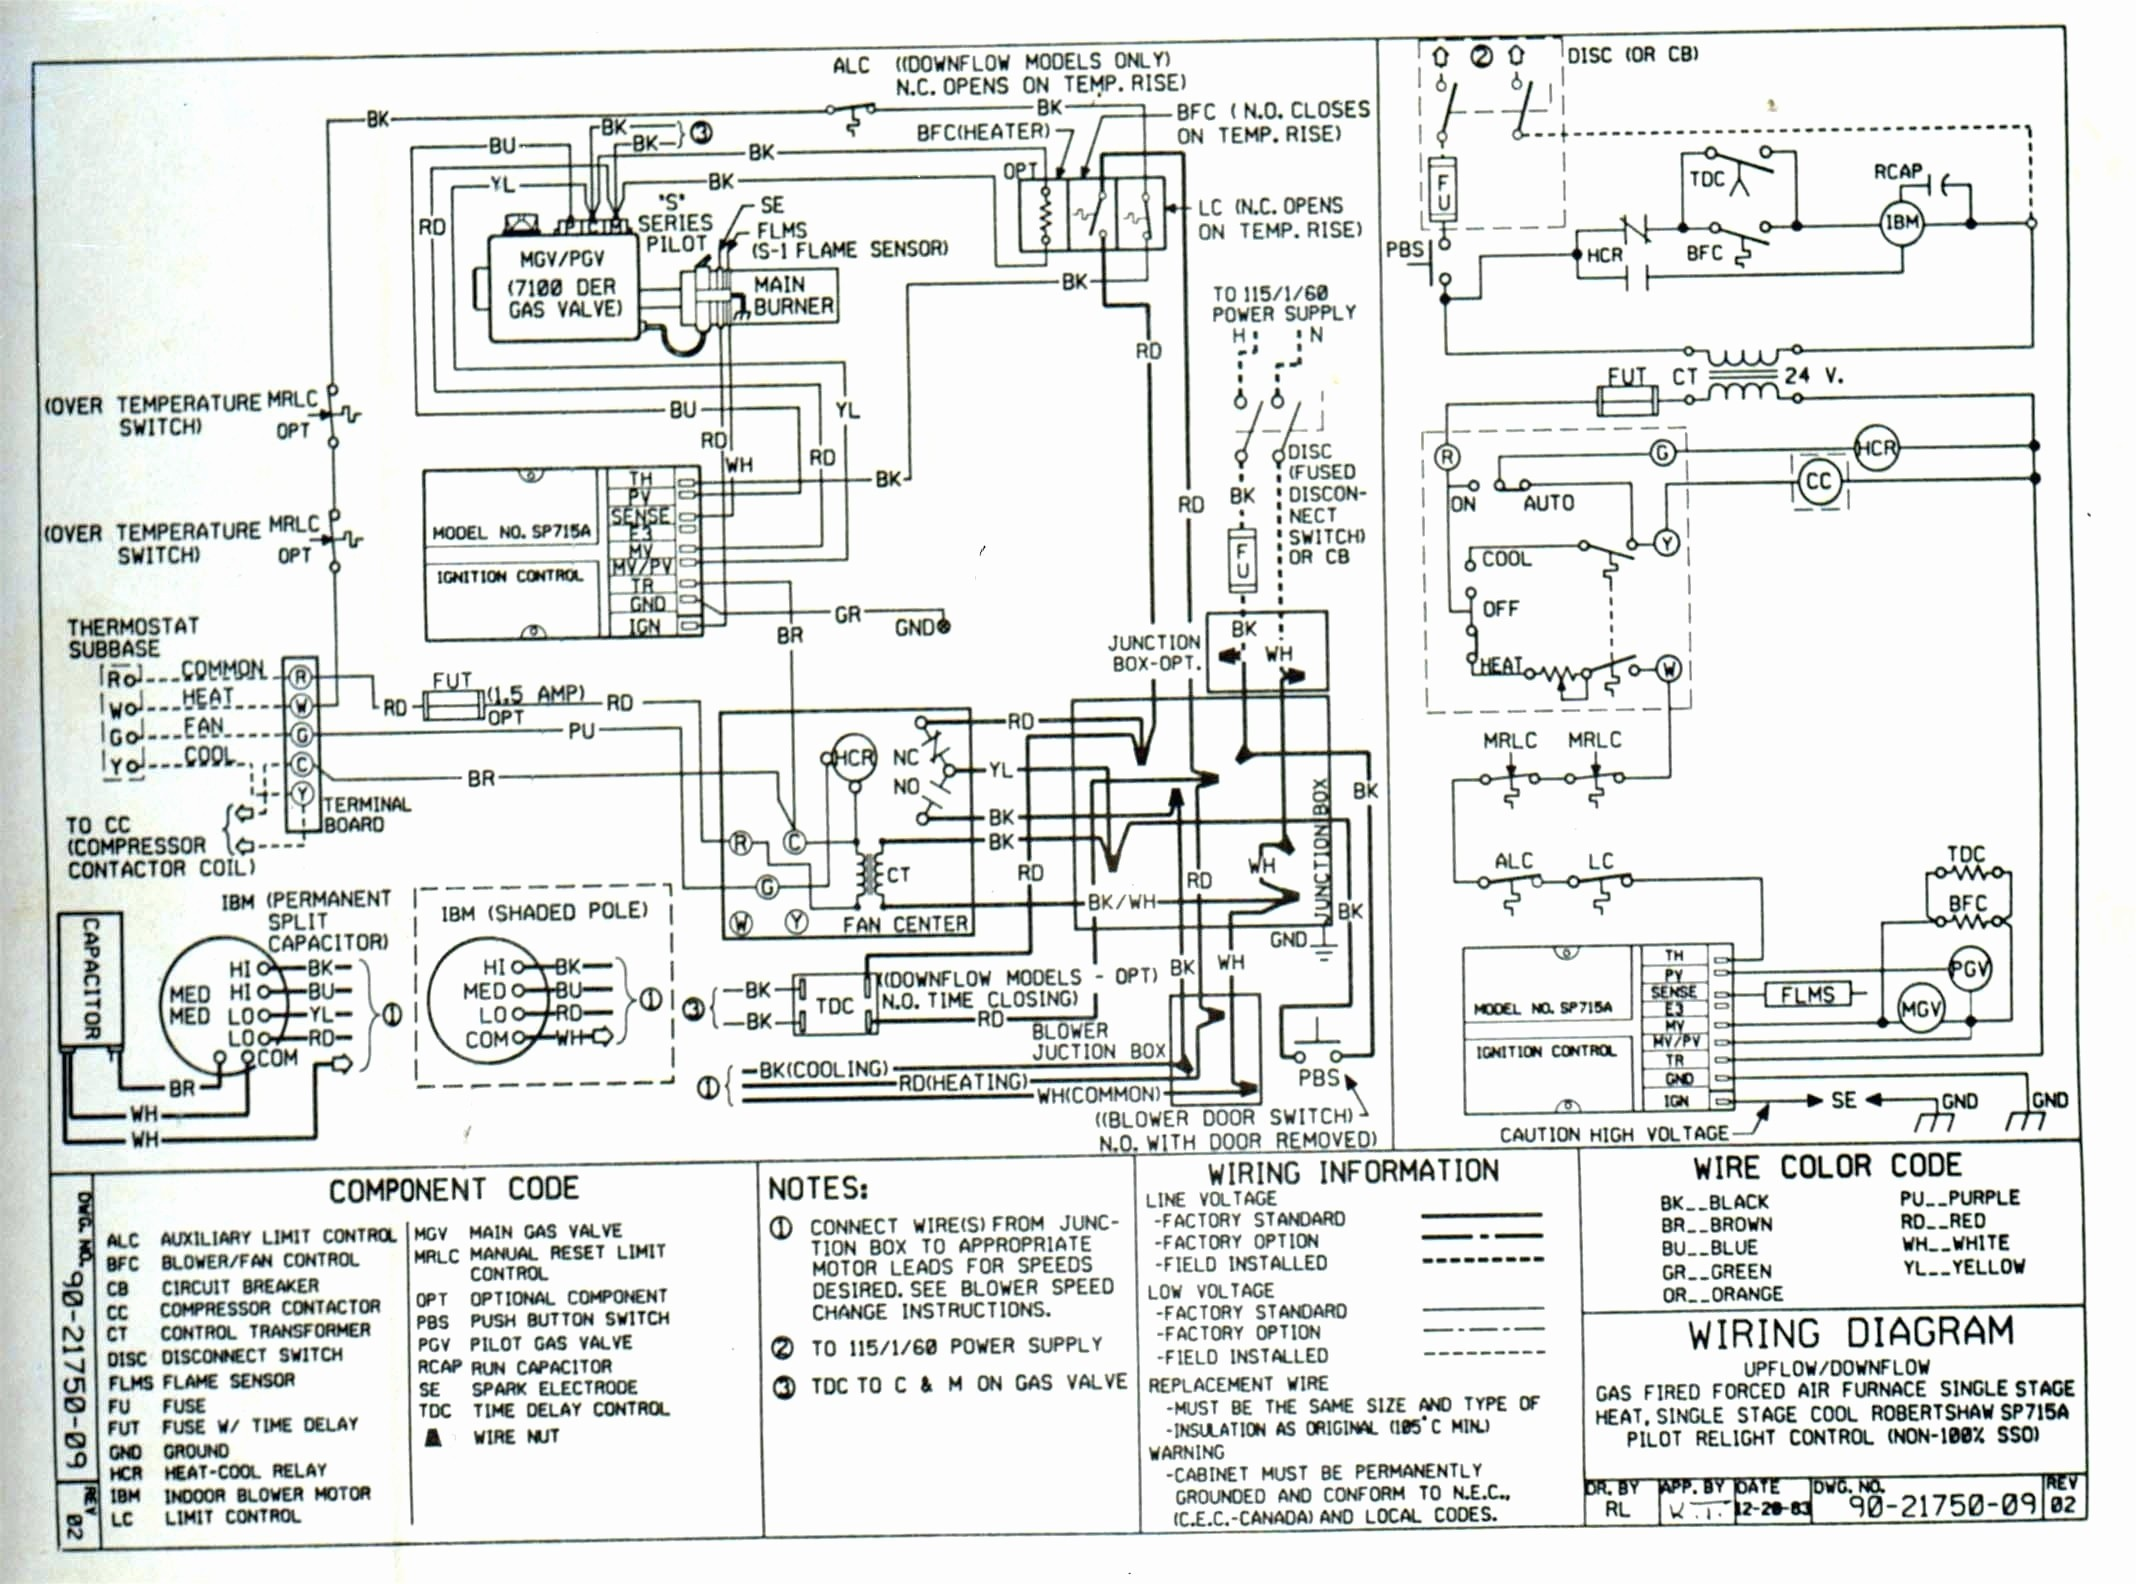 Amp Research Power Step Wiring Diagram C9b Robbins Amp Myers Electric Motor Wiring Diagram Of Amp Research Power Step Wiring Diagram F099f Range Rover Denso Radio Wiring Schematics 2007